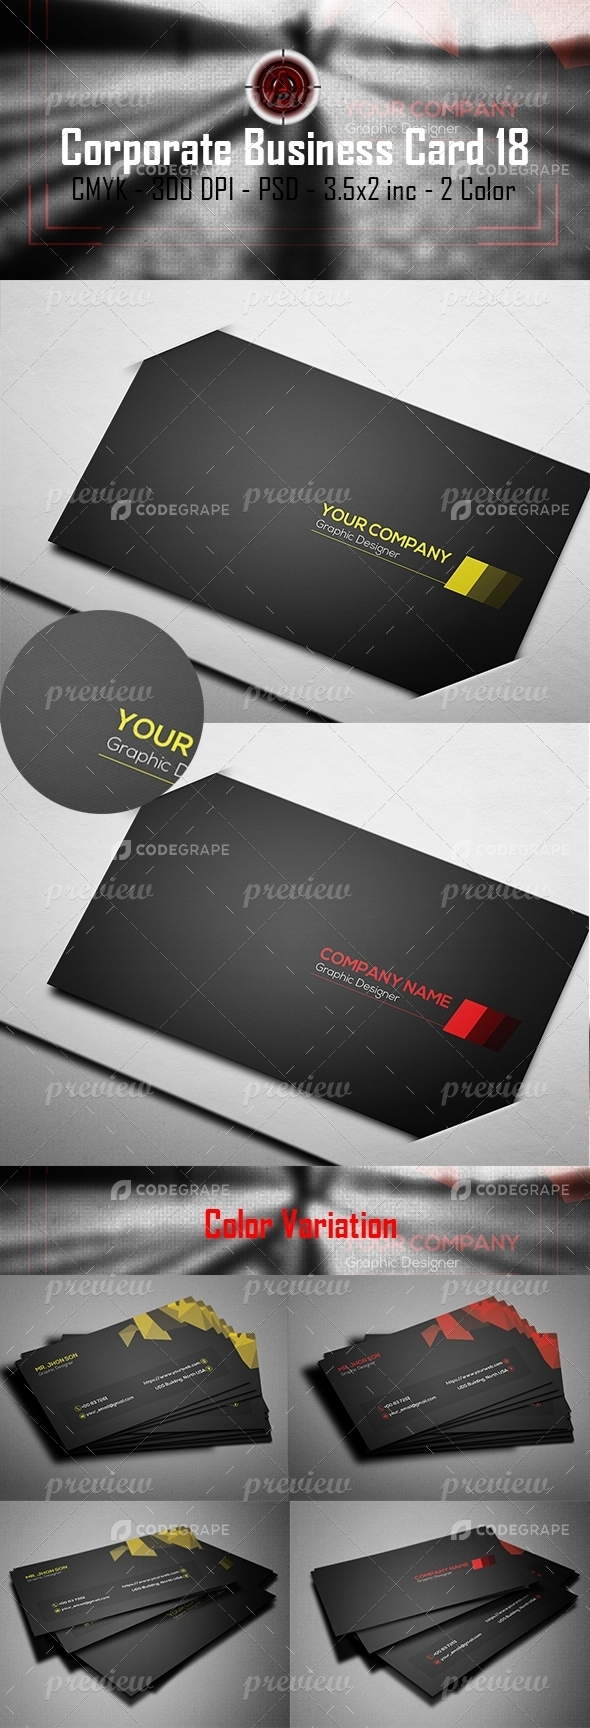 Corporate Business Card 19